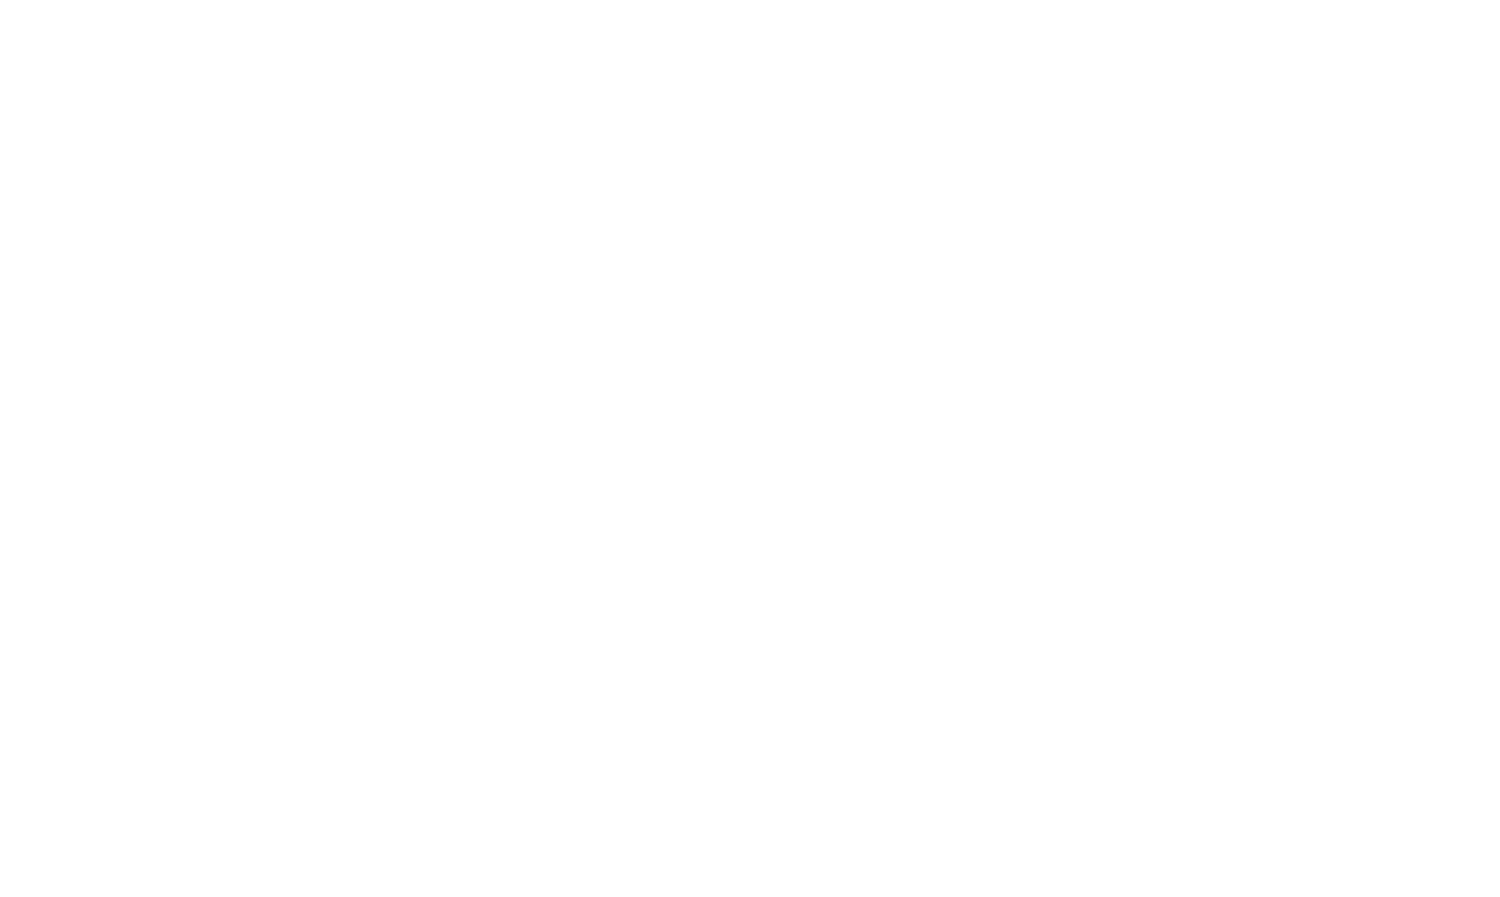 Broadmeadows Special Developmental School